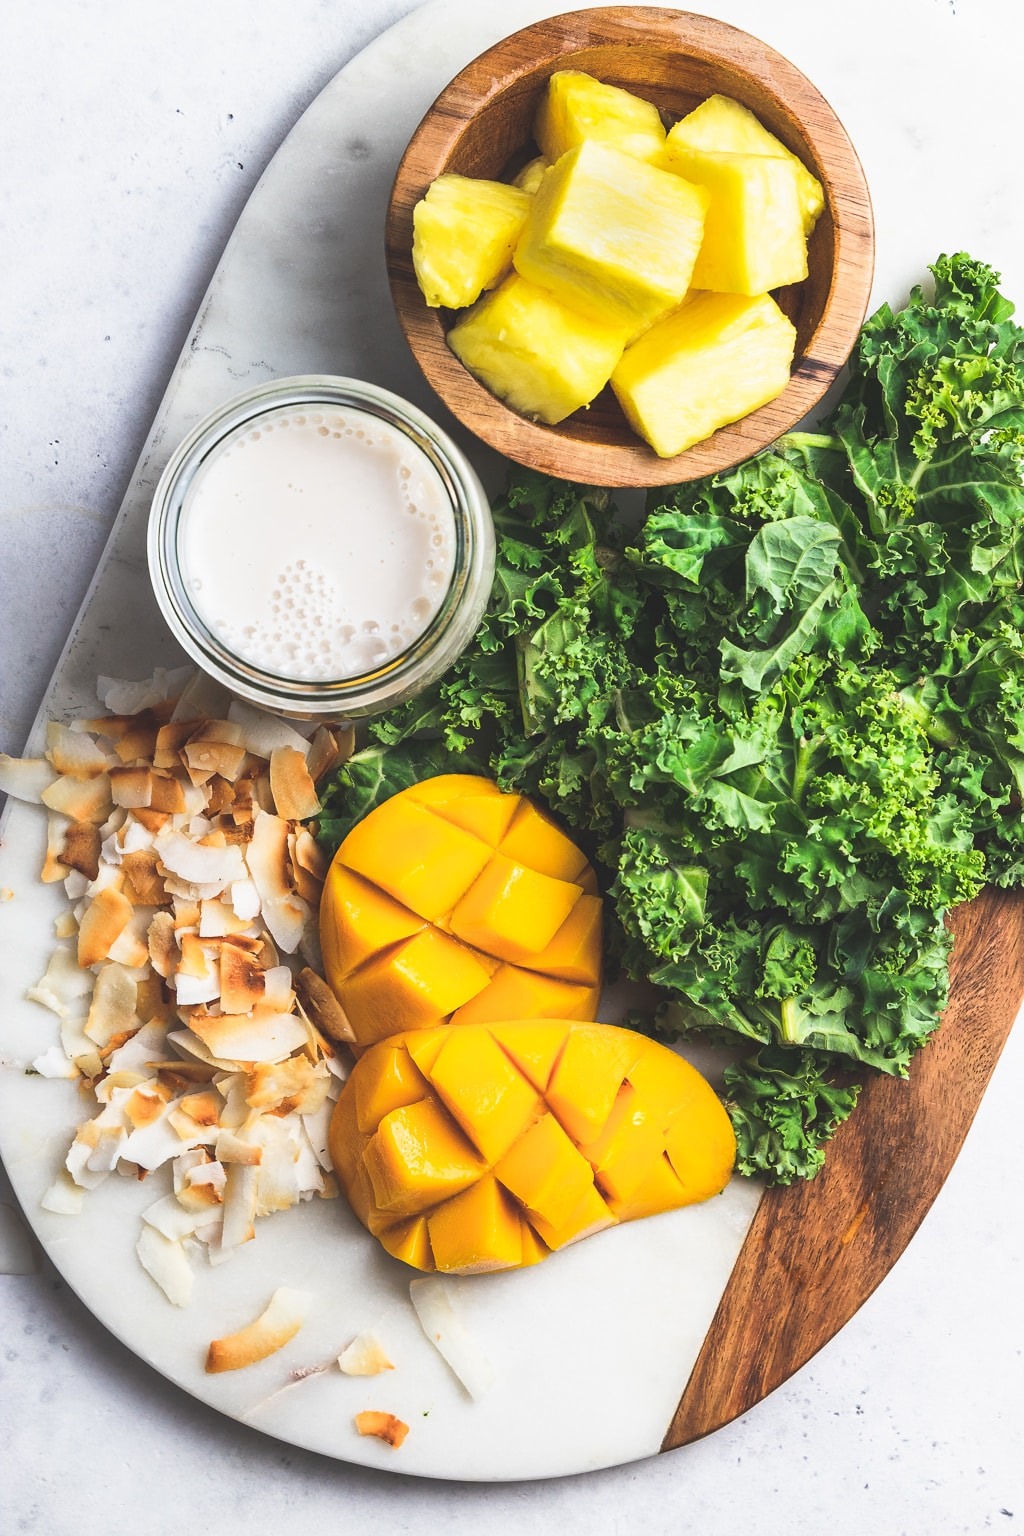 kale, mango, pineapple, almond milk, and coconut flakes on a wood and marble board